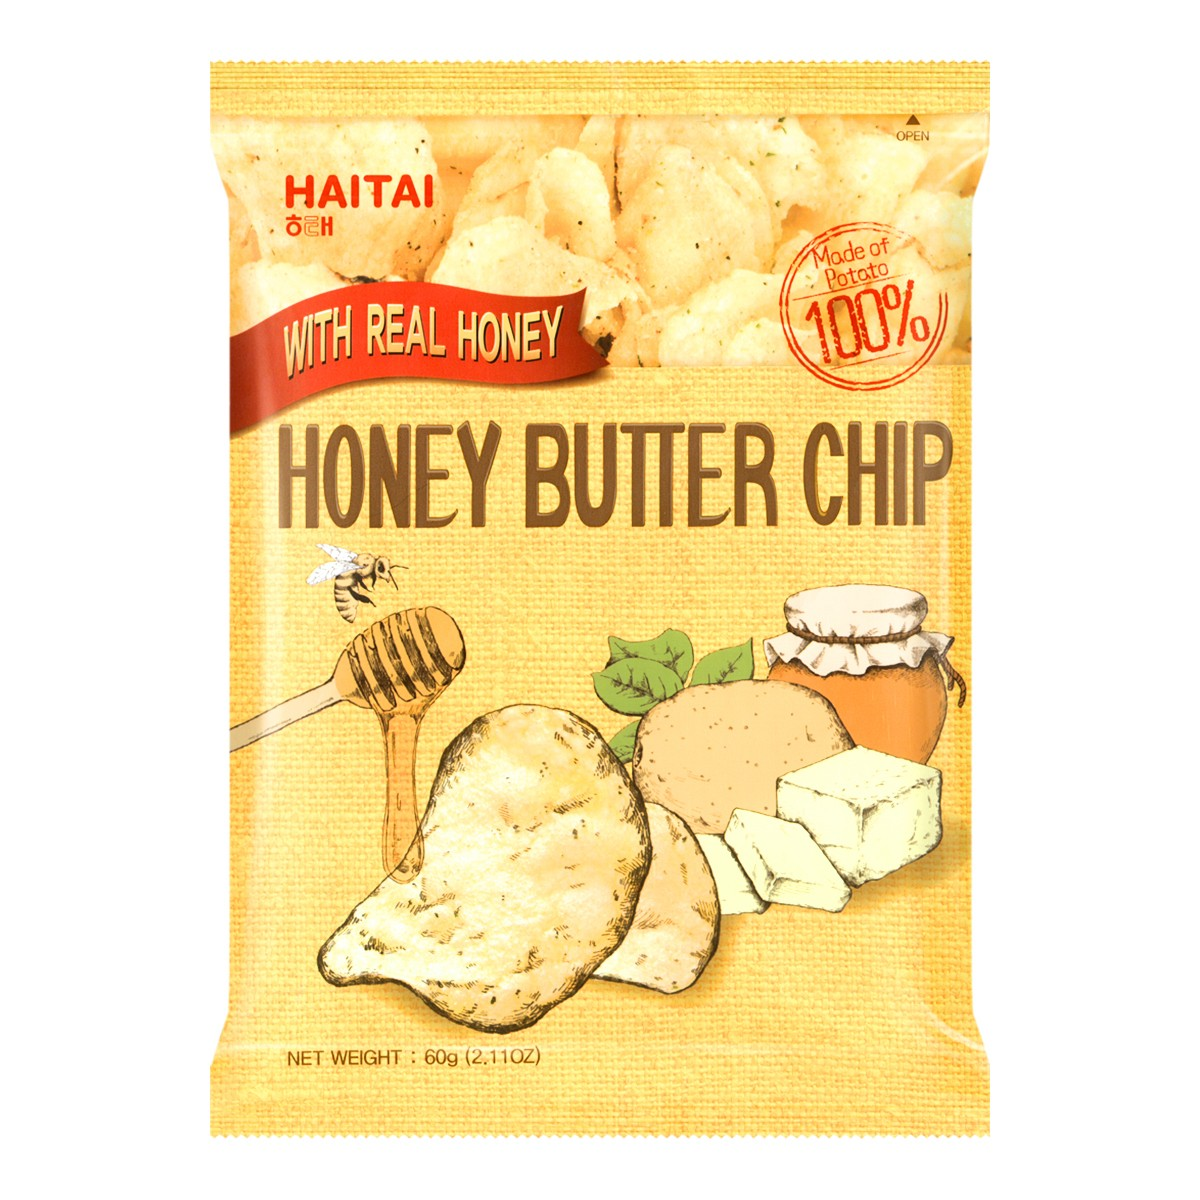 Yamibuy.com:Customer reviews:HAITAI Honey Butter Chip 60g